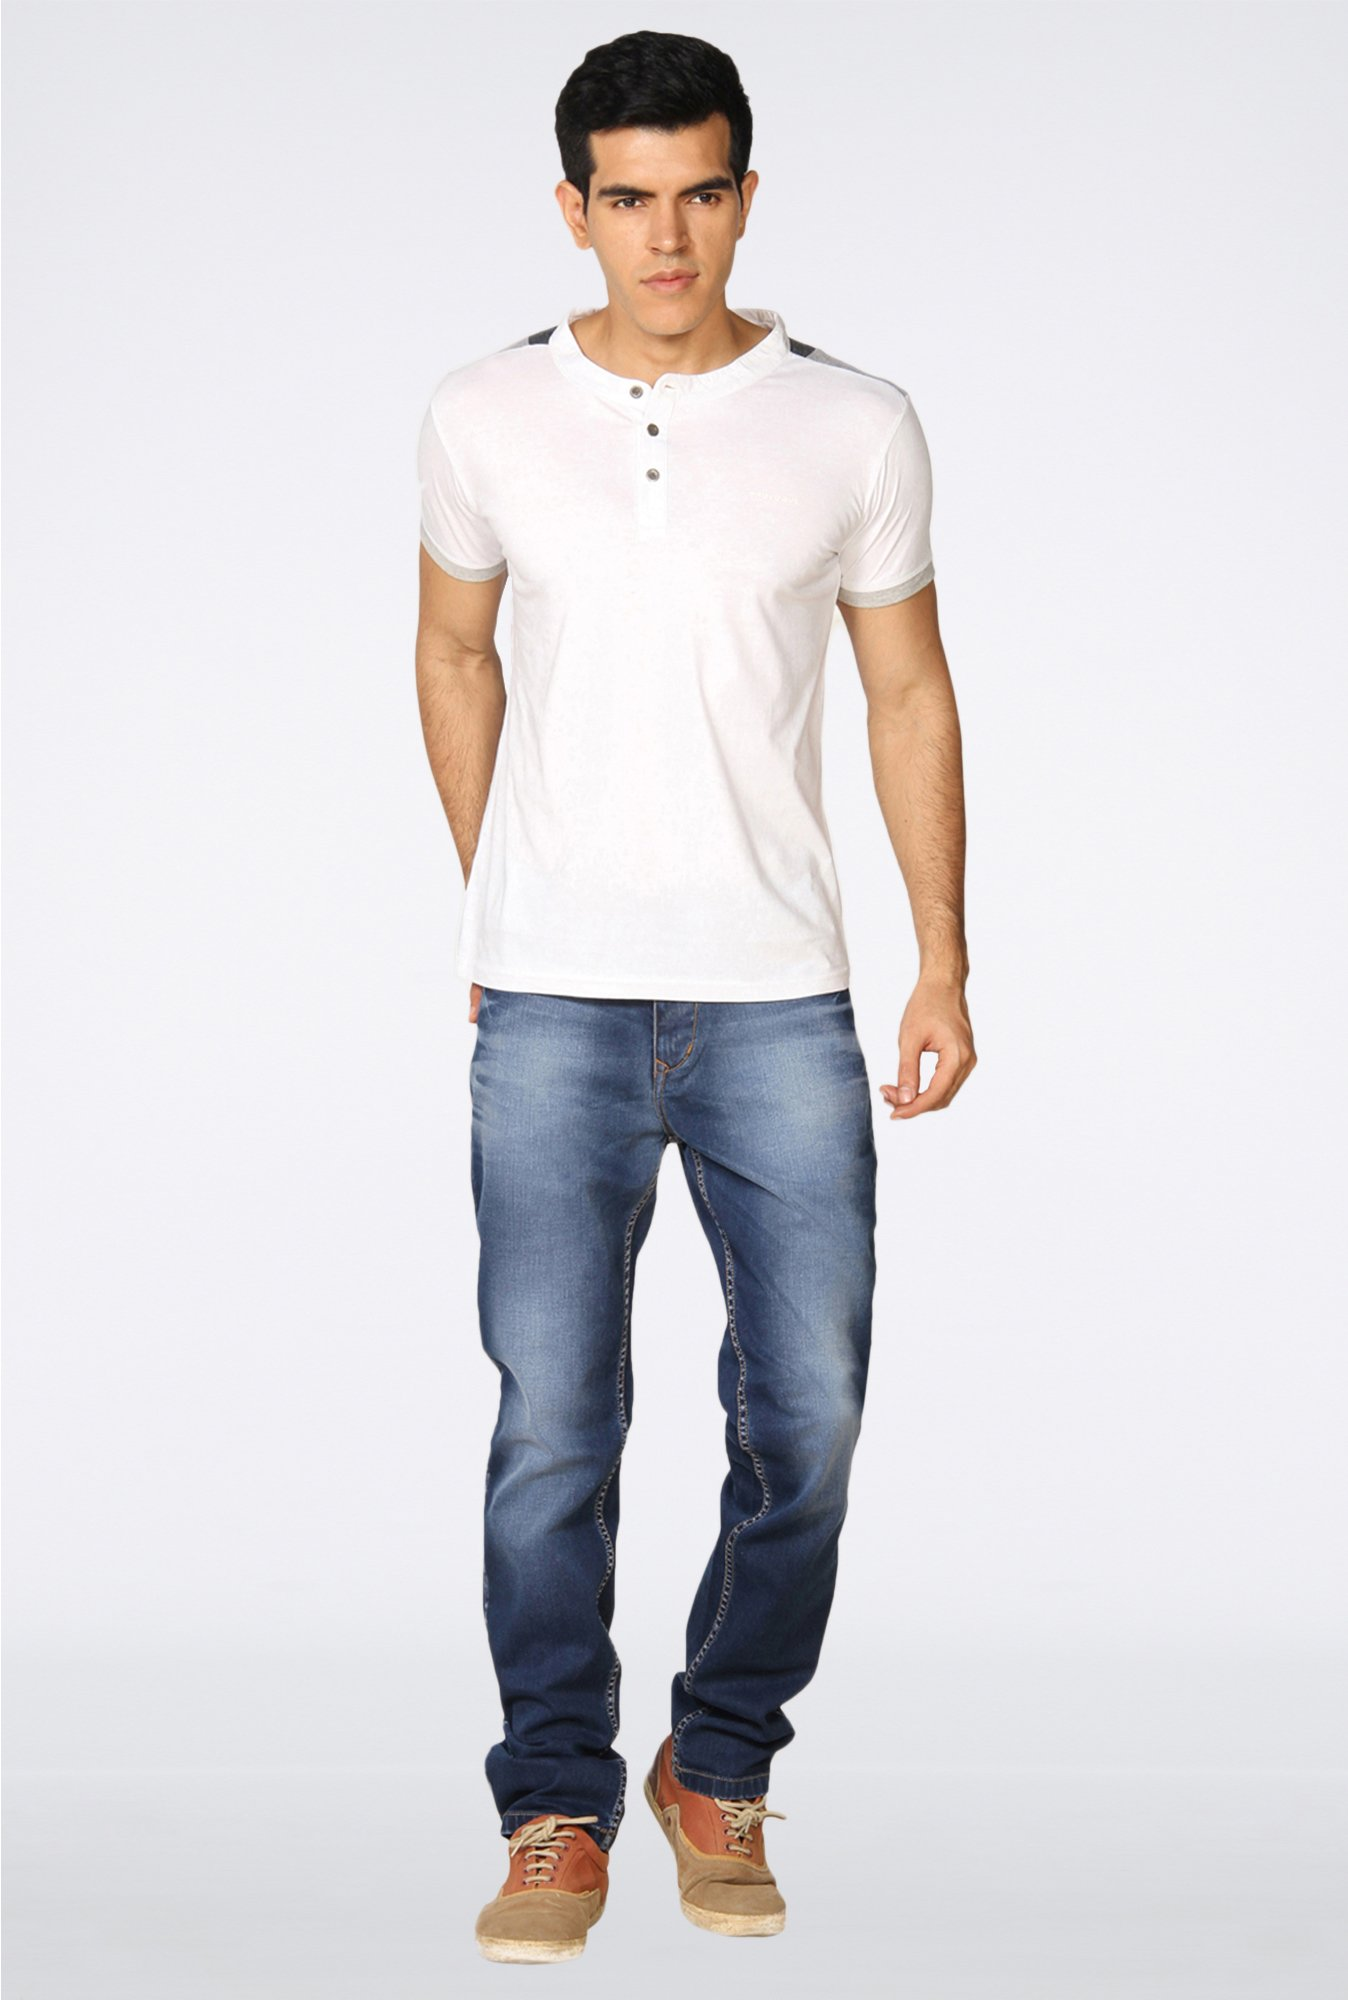 Provogue White Solid T-Shirt